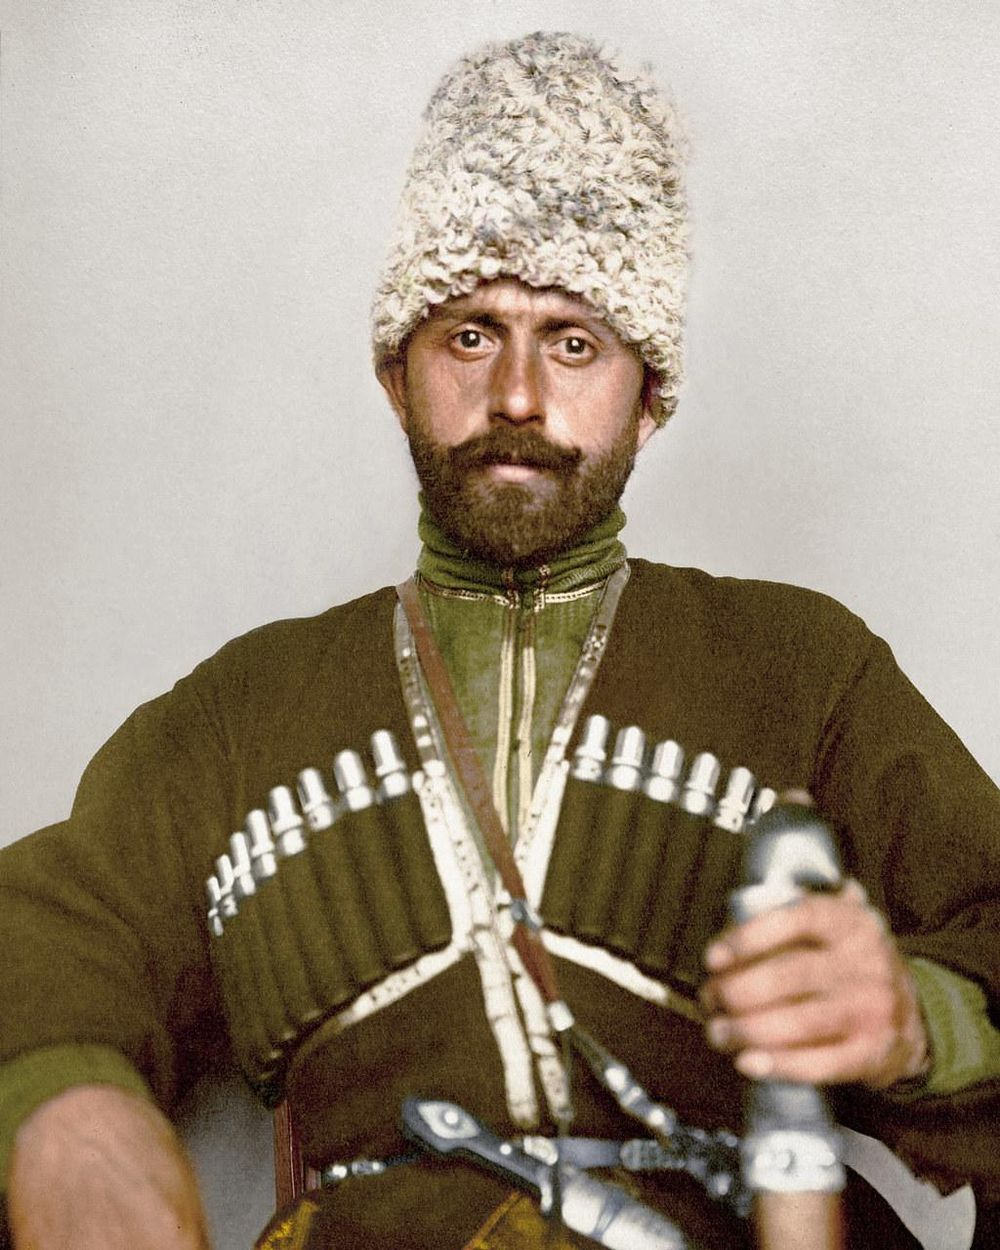 Cossack Man - image 2 - student project